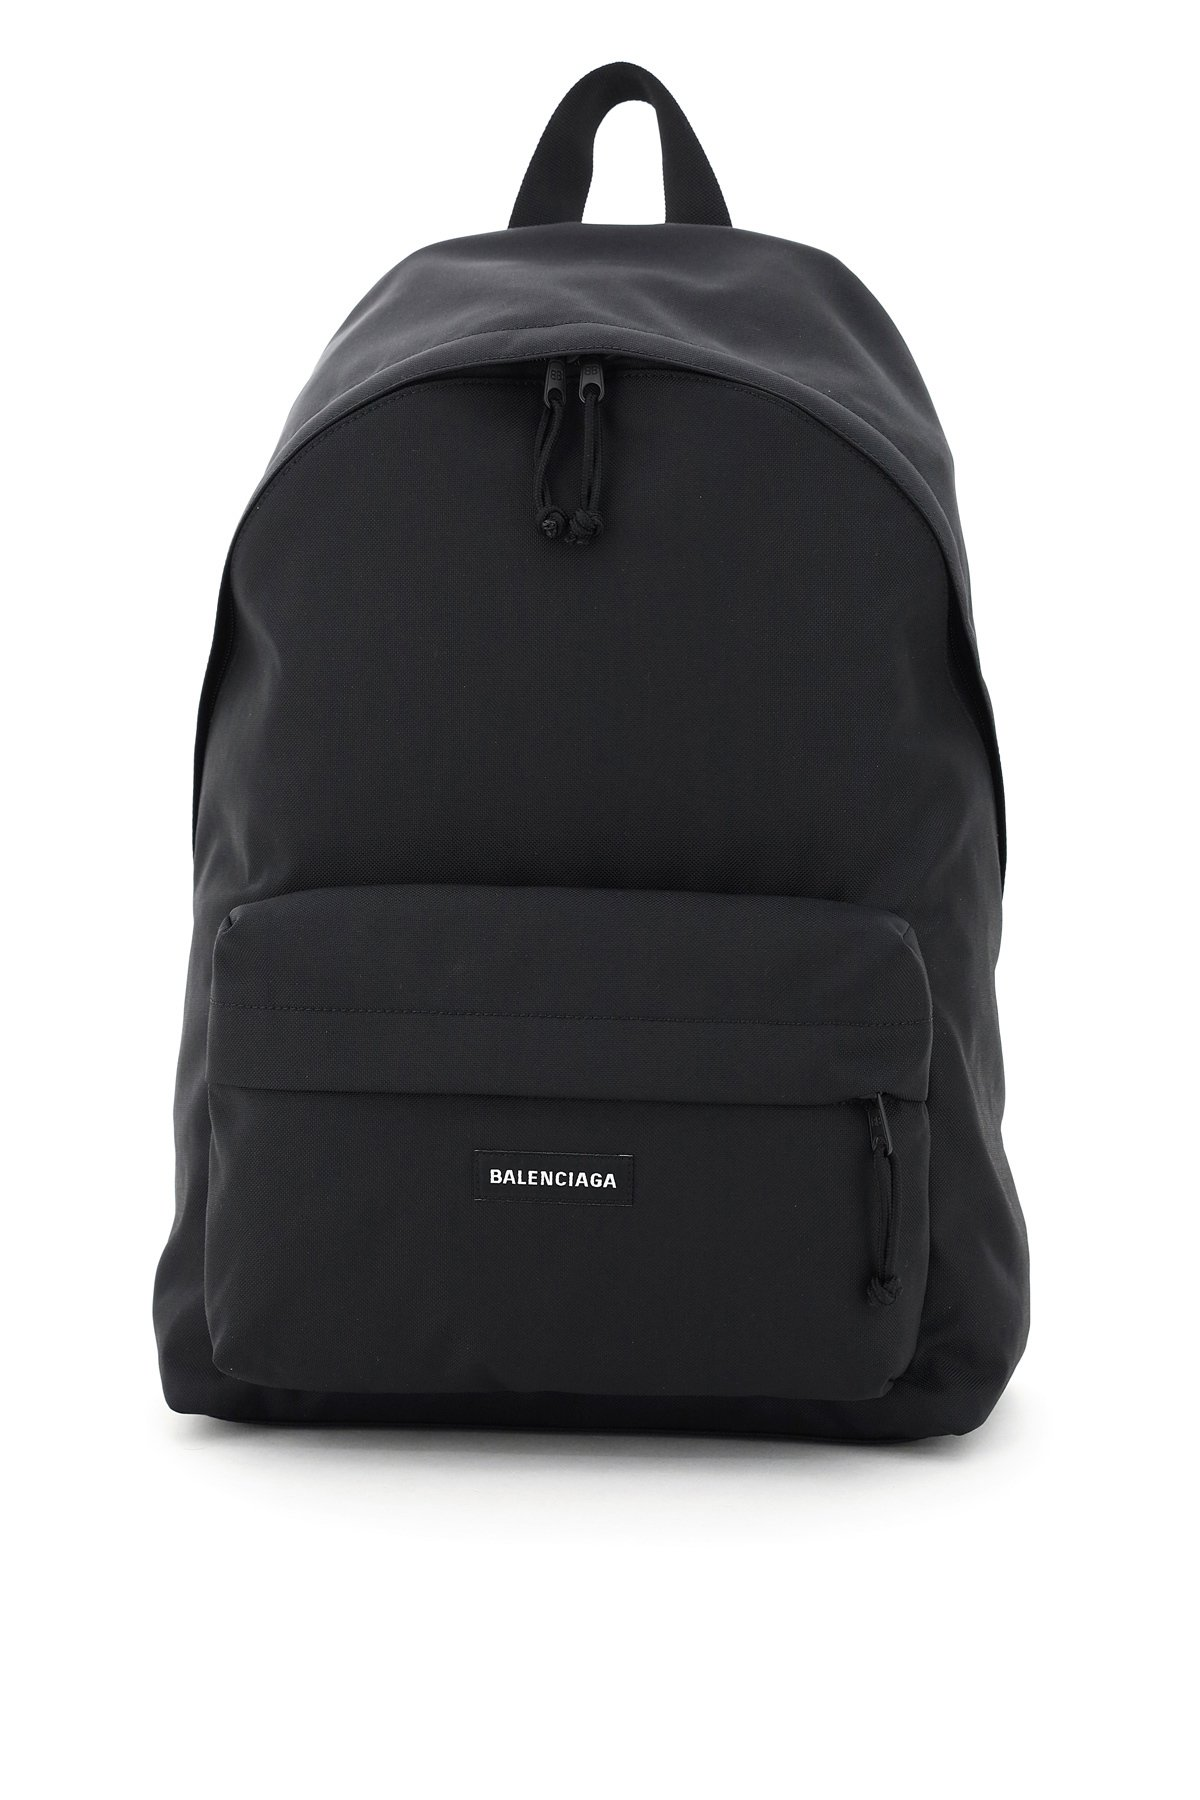 Balenciaga explorer recycled casual nylon backpack